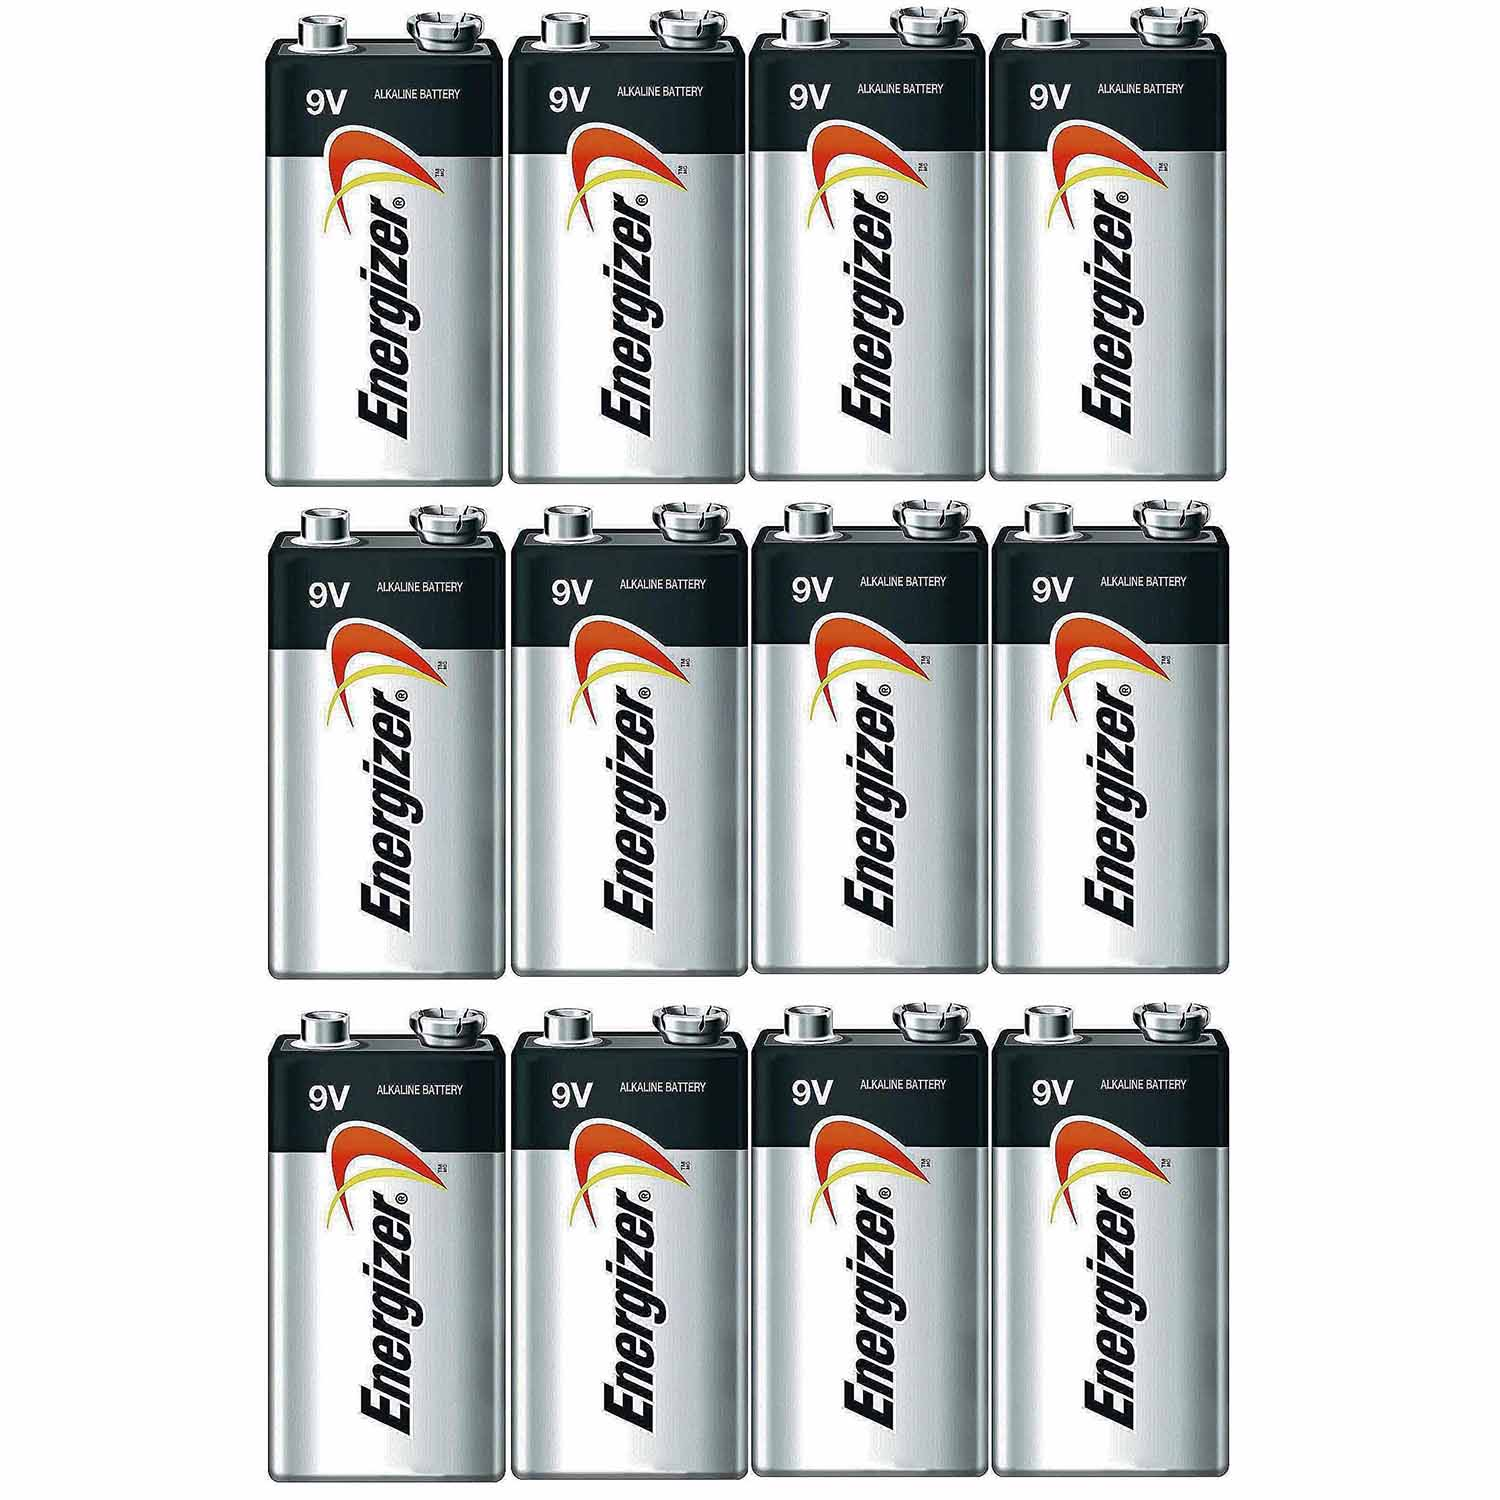 Energizer E522 Max 9 Volt Alkaline Battery - 12 Batteries + 30% Off!